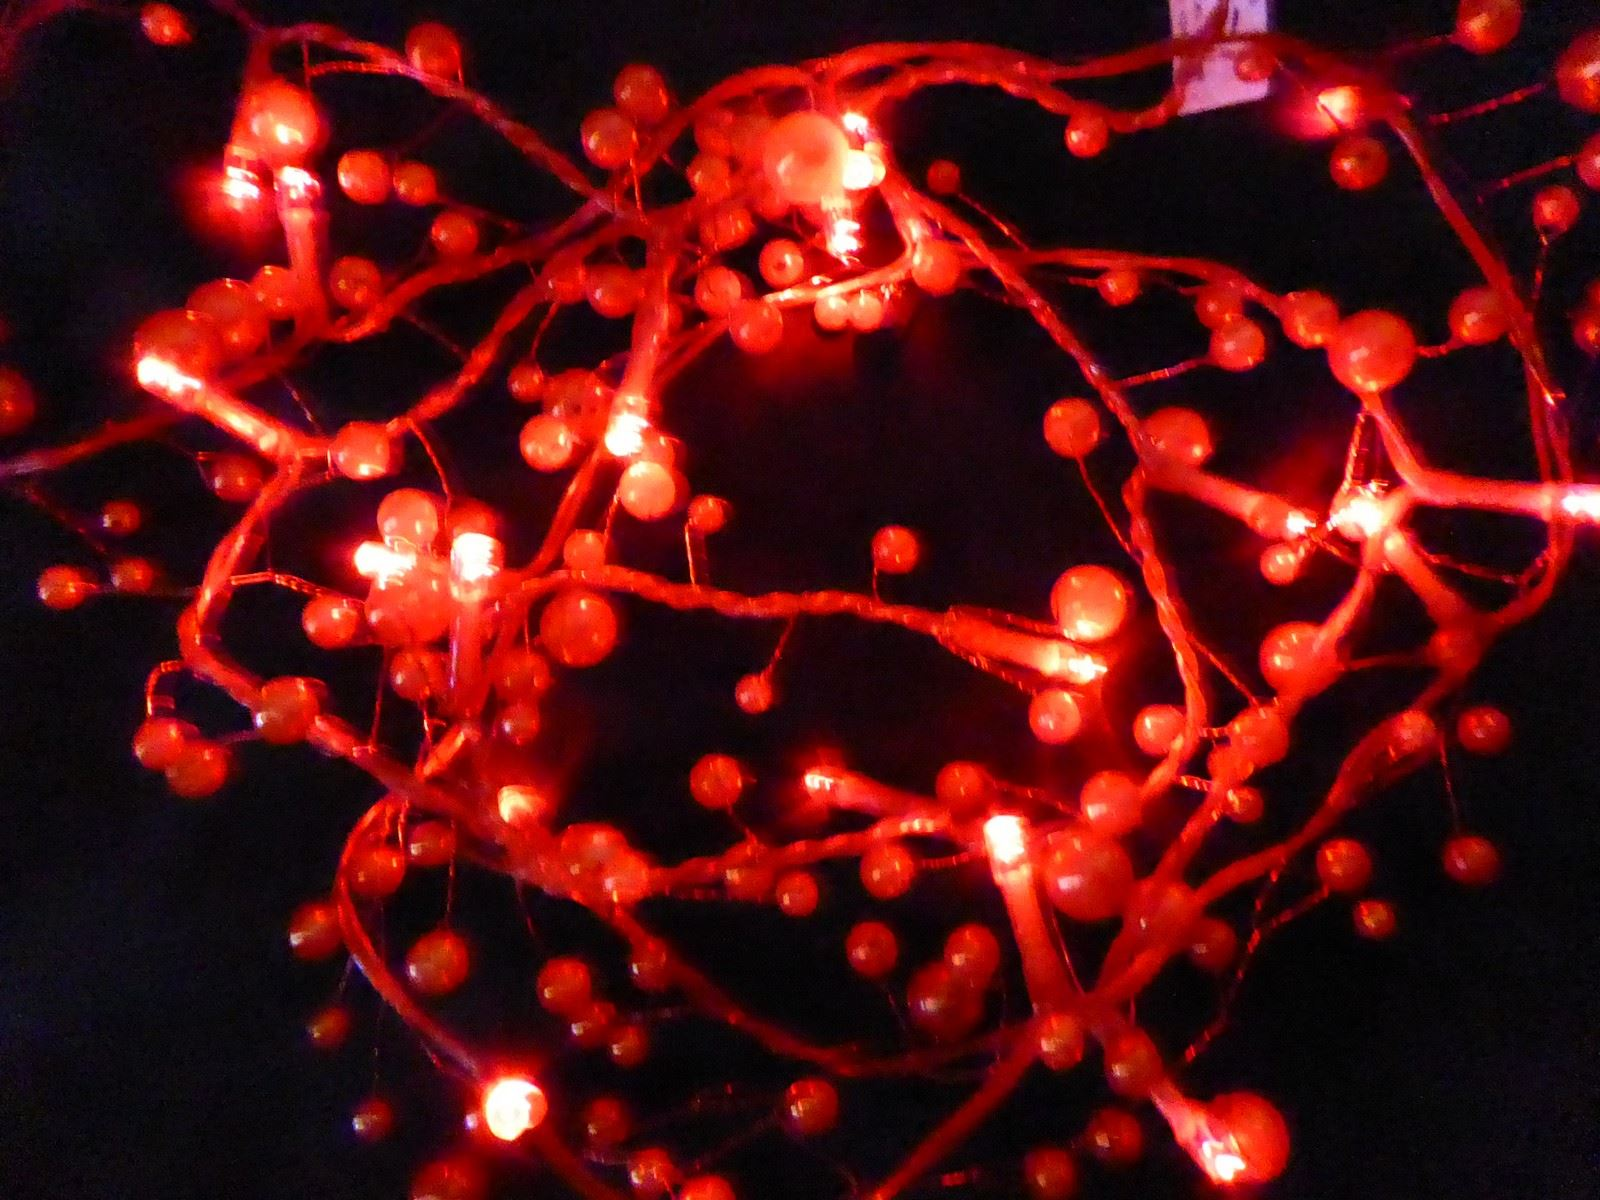 6ft-1-8m-Berry-Twig-Artificial-Christmas-Garland-With-Lights-Decoration thumbnail 11